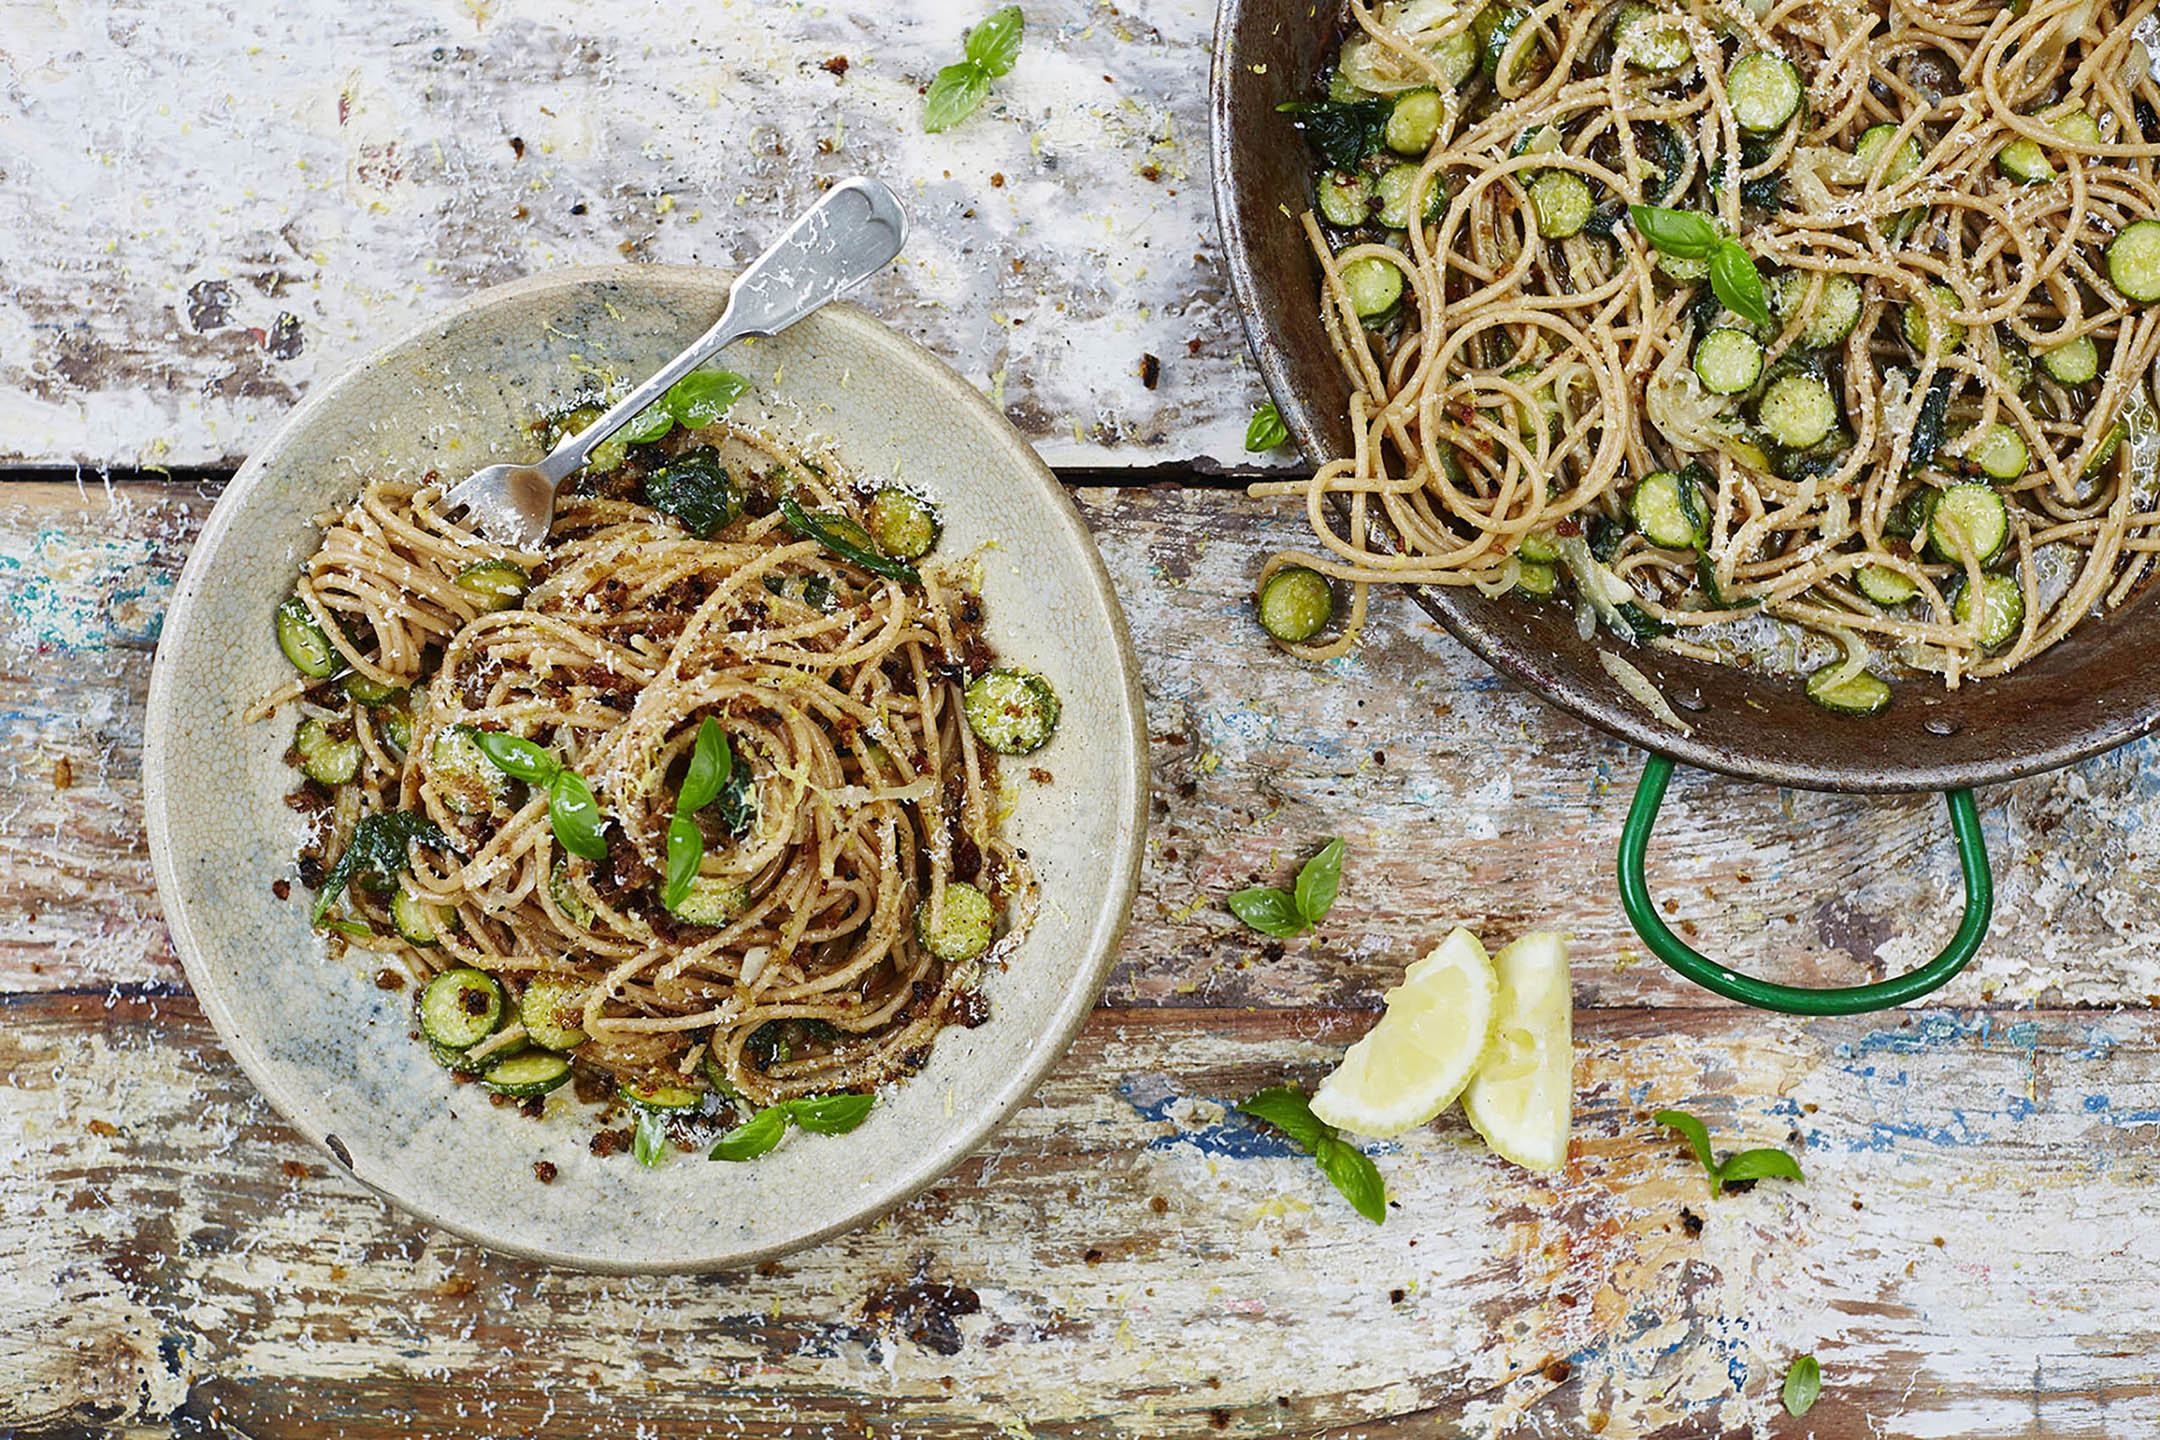 SteveRyan_Photographer_Food_JamieOliver_CourgettePasta_166